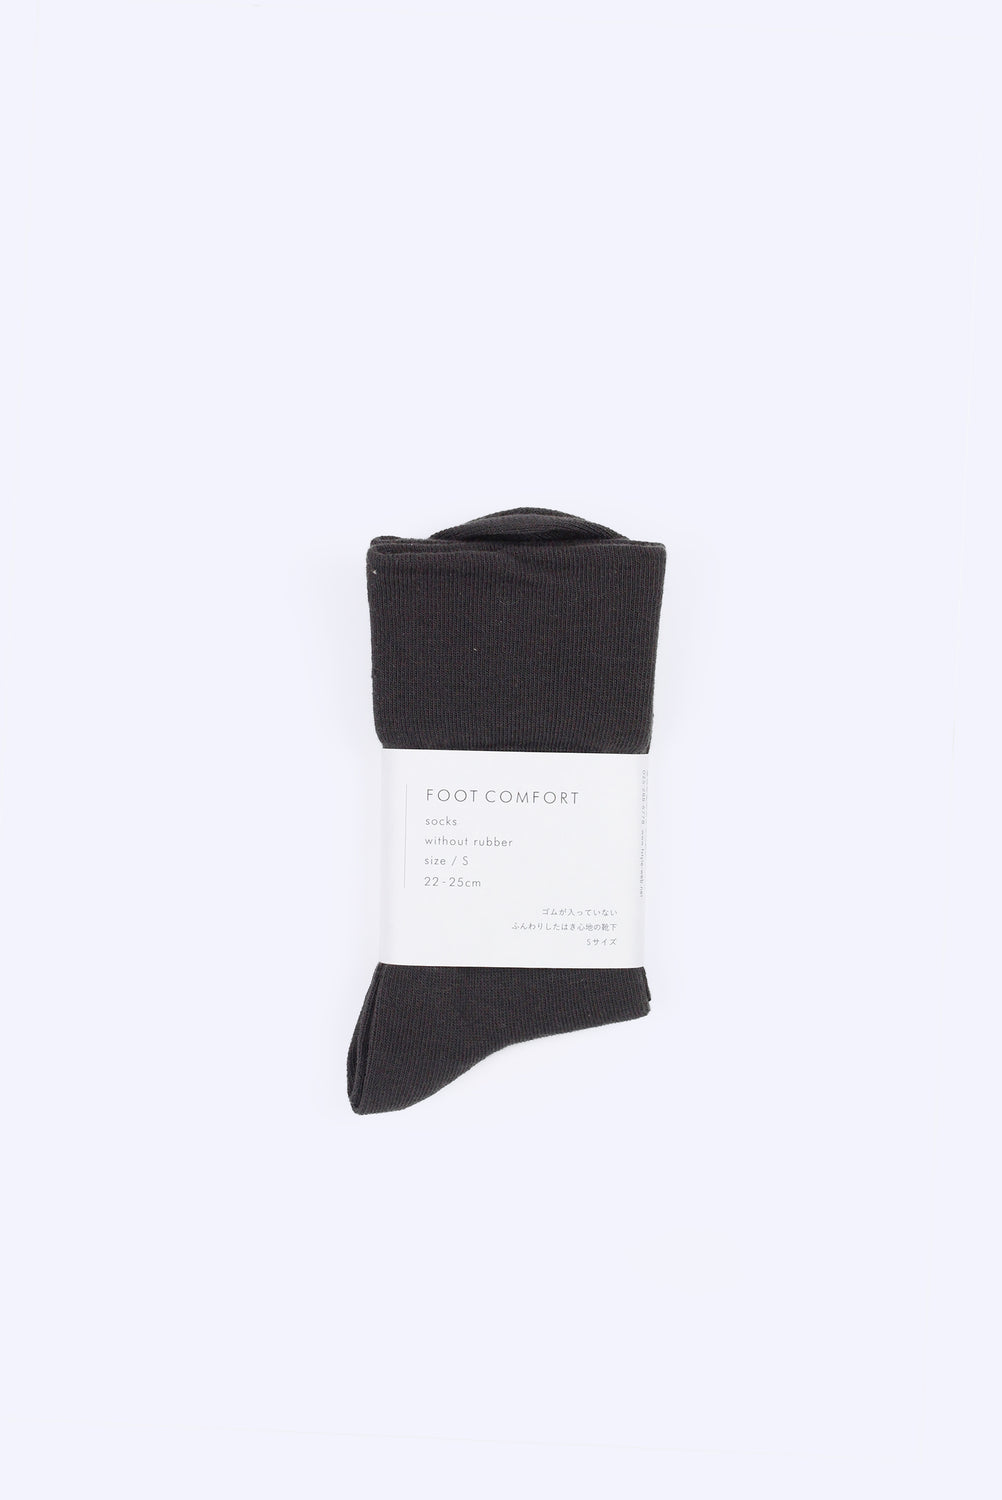 Foot Comfort Socks, Dark Brown Grey